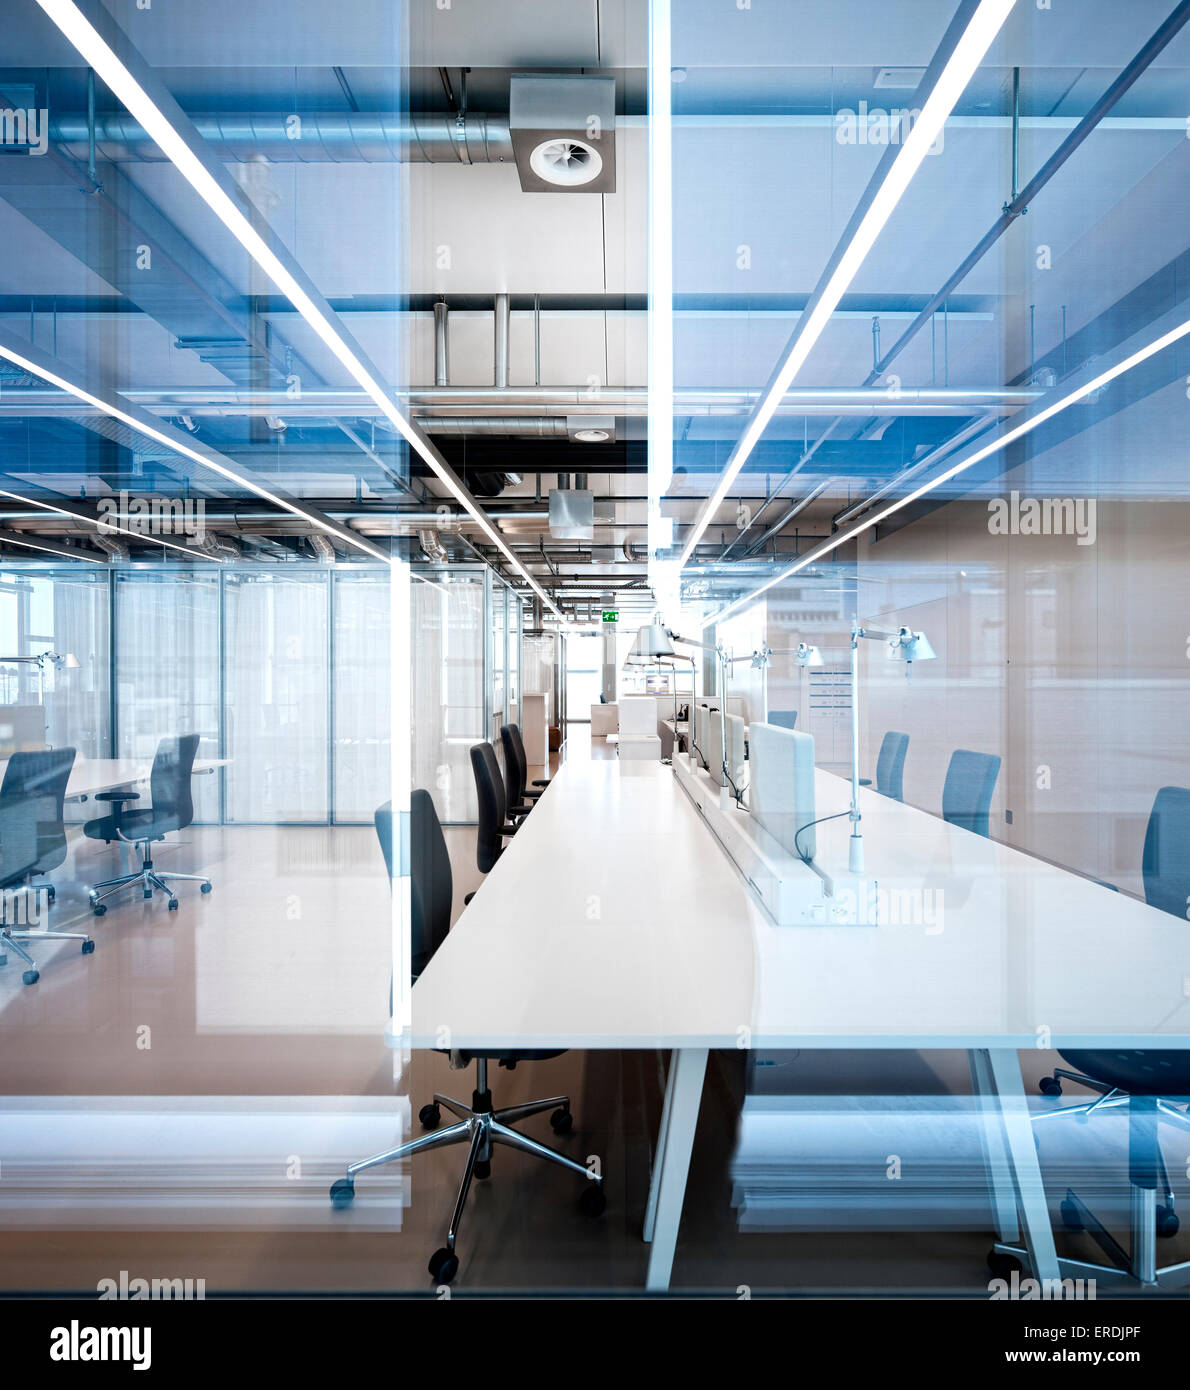 Office Interior With Glass Partitioning Novartis Campus Virchow 6, Basel,  Switzerland Architect